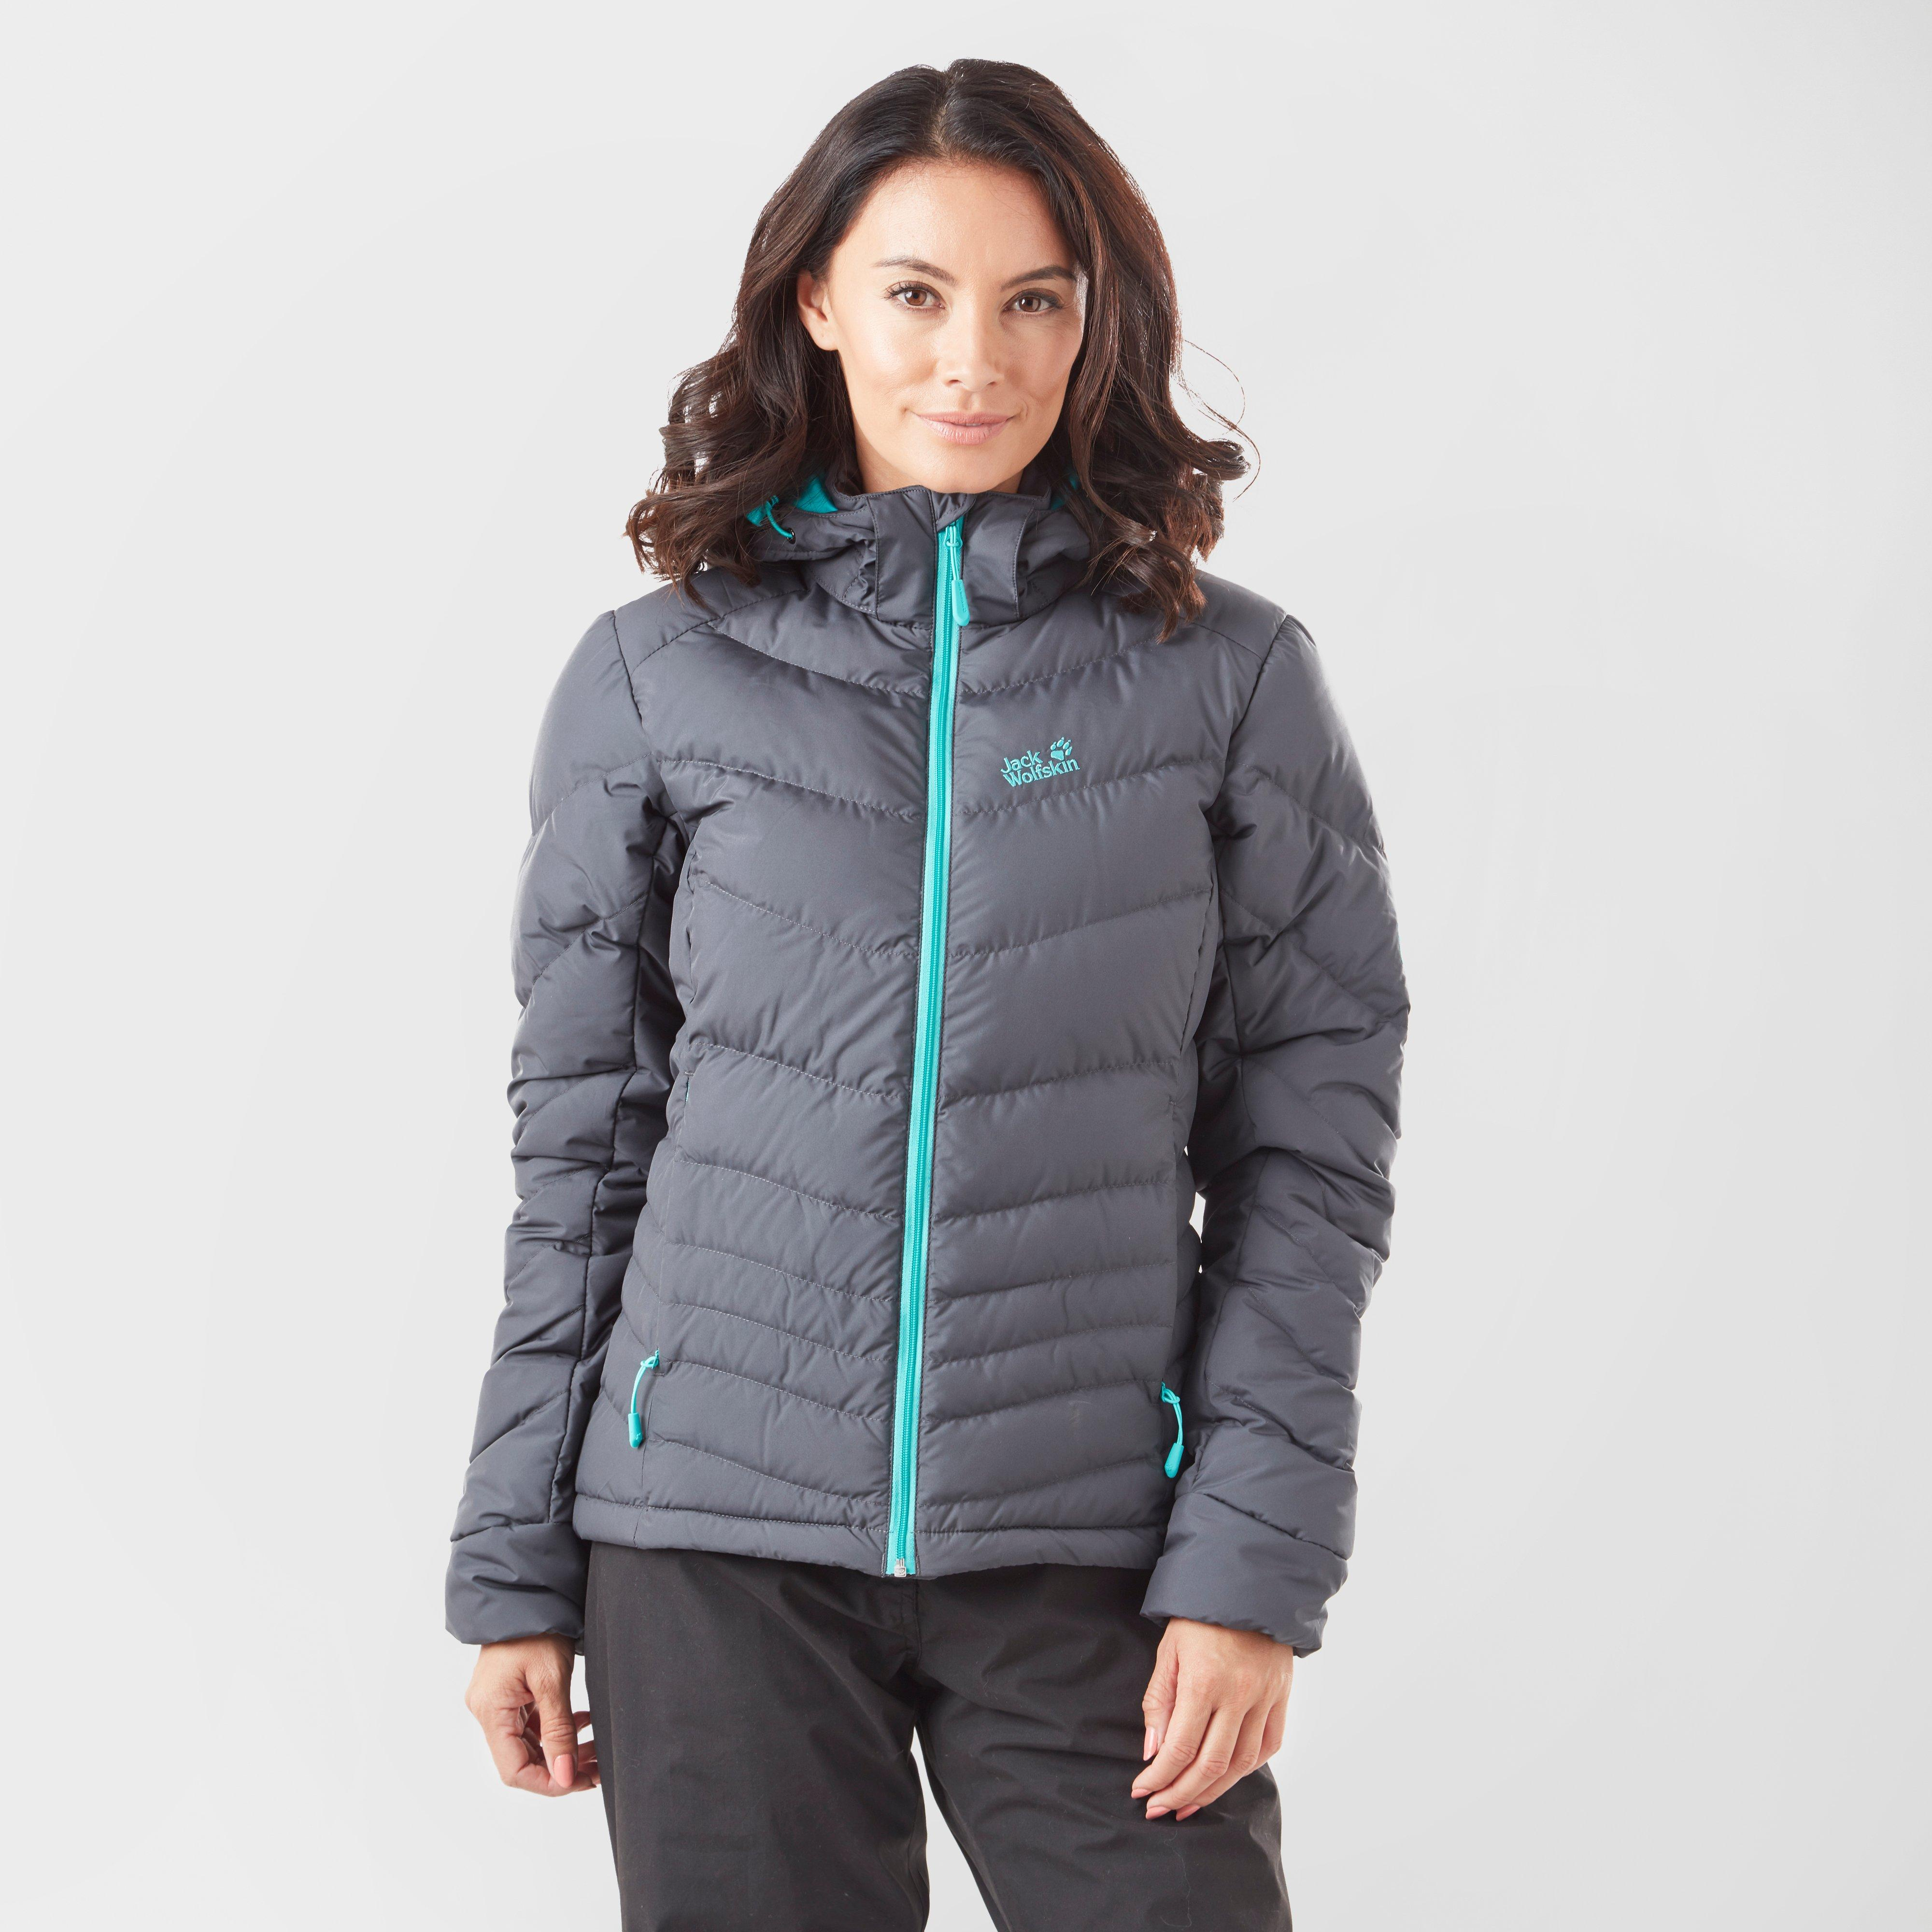 Jack Wolfskin Women's Serenia Down Jacket, Grey